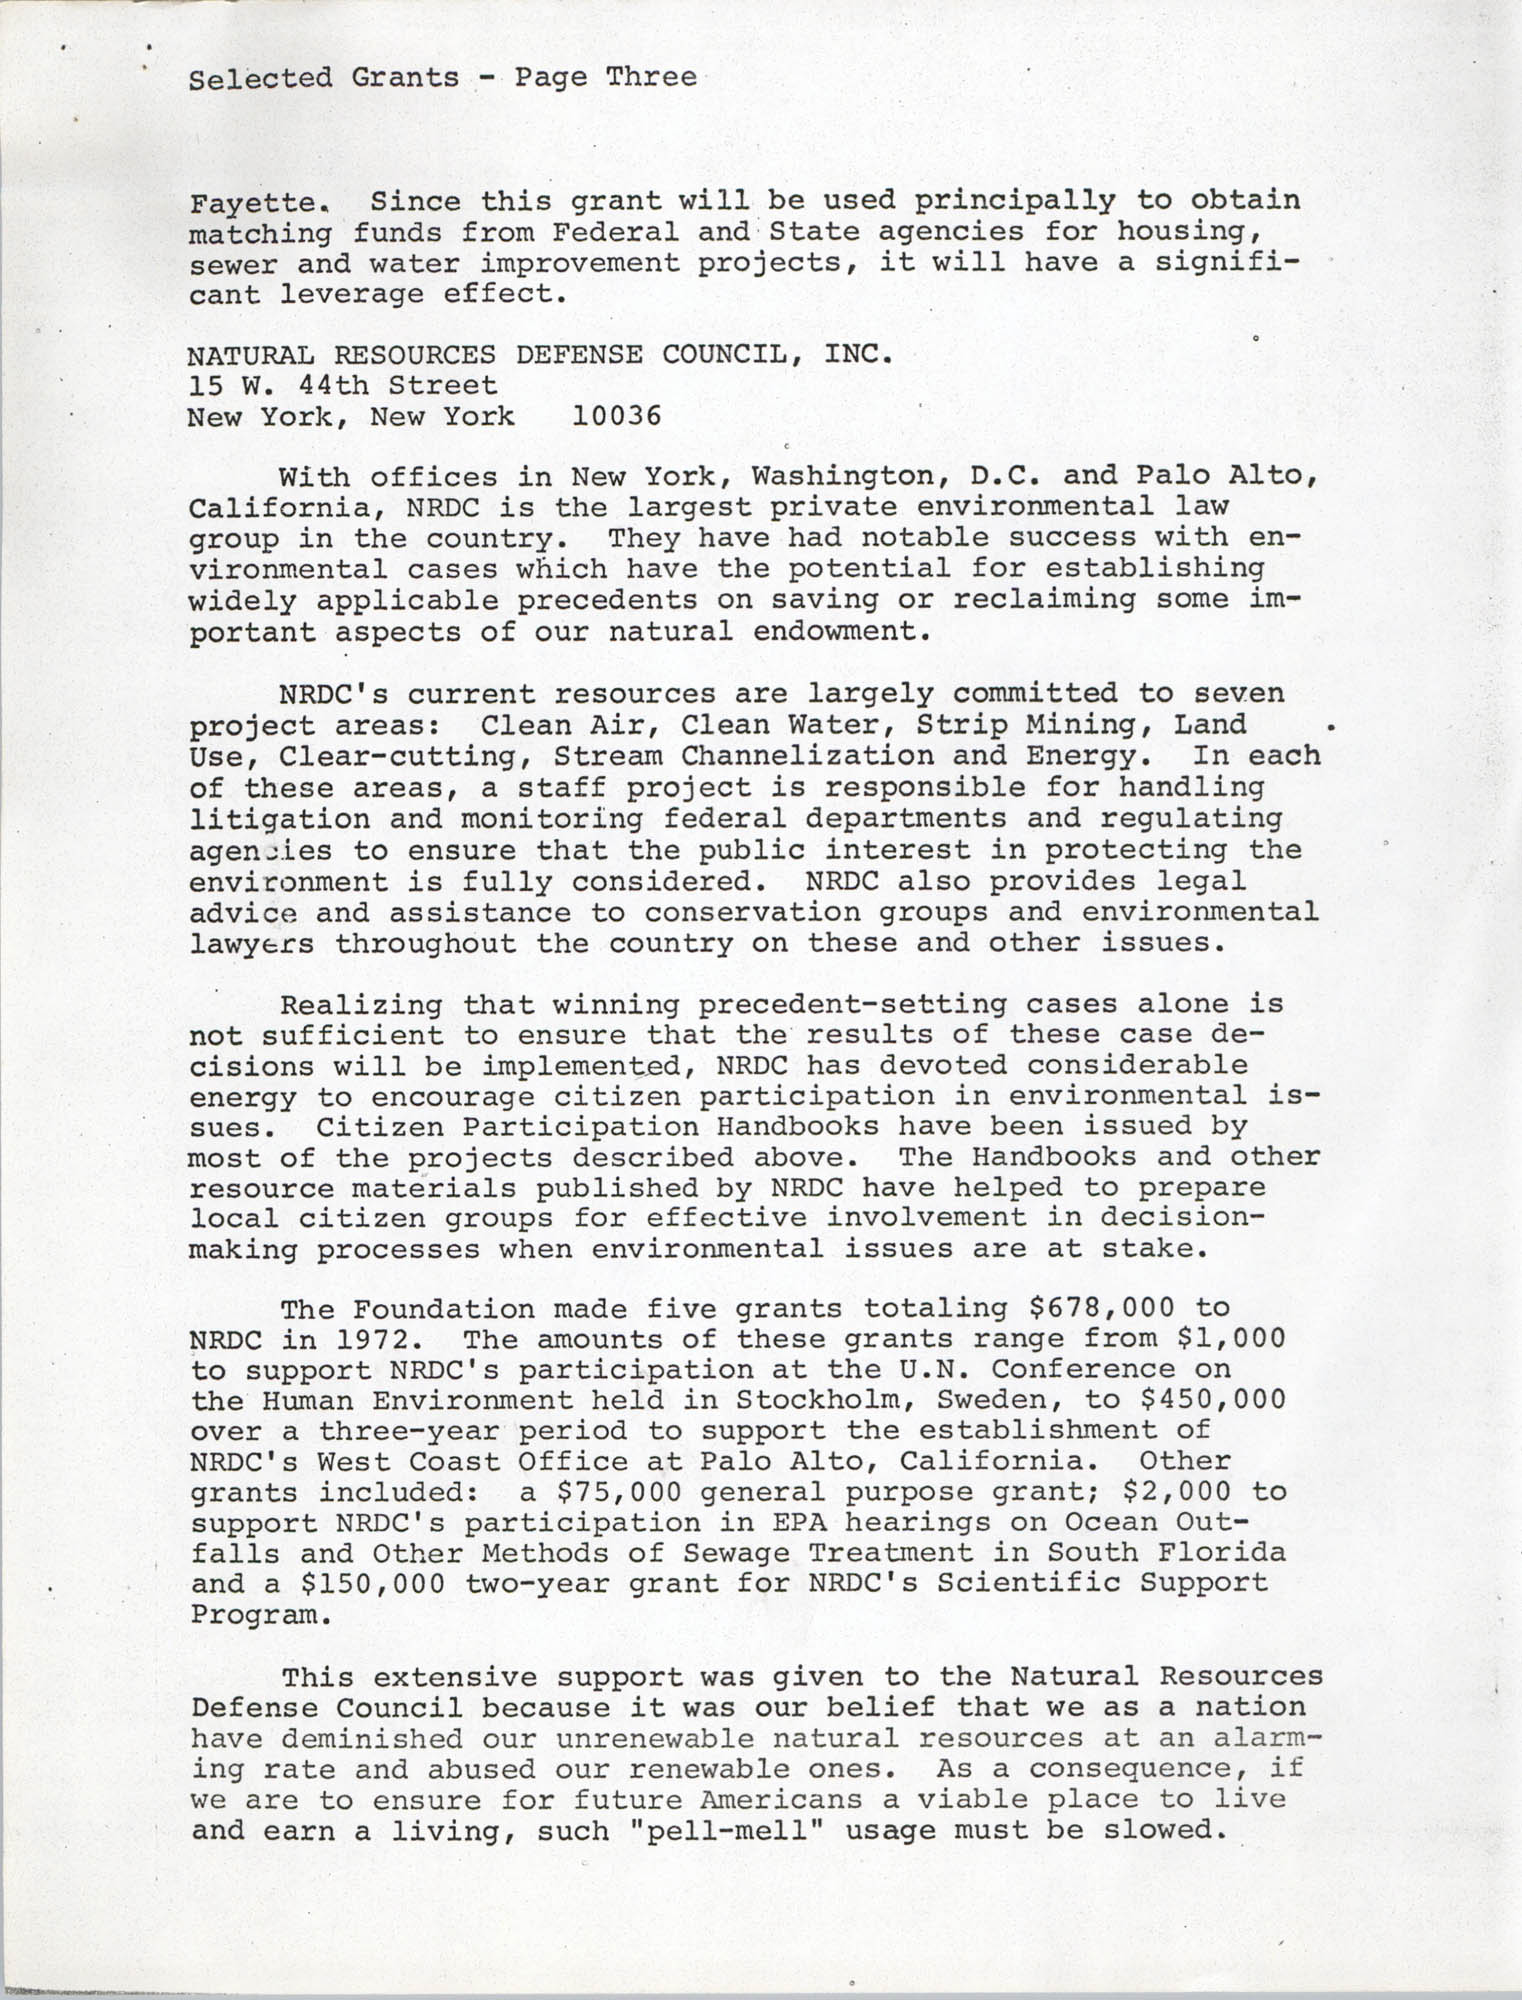 Josephine H. McIntosh Foundation Grant-Making Activities Report for 1972, Selected Grants Page 3